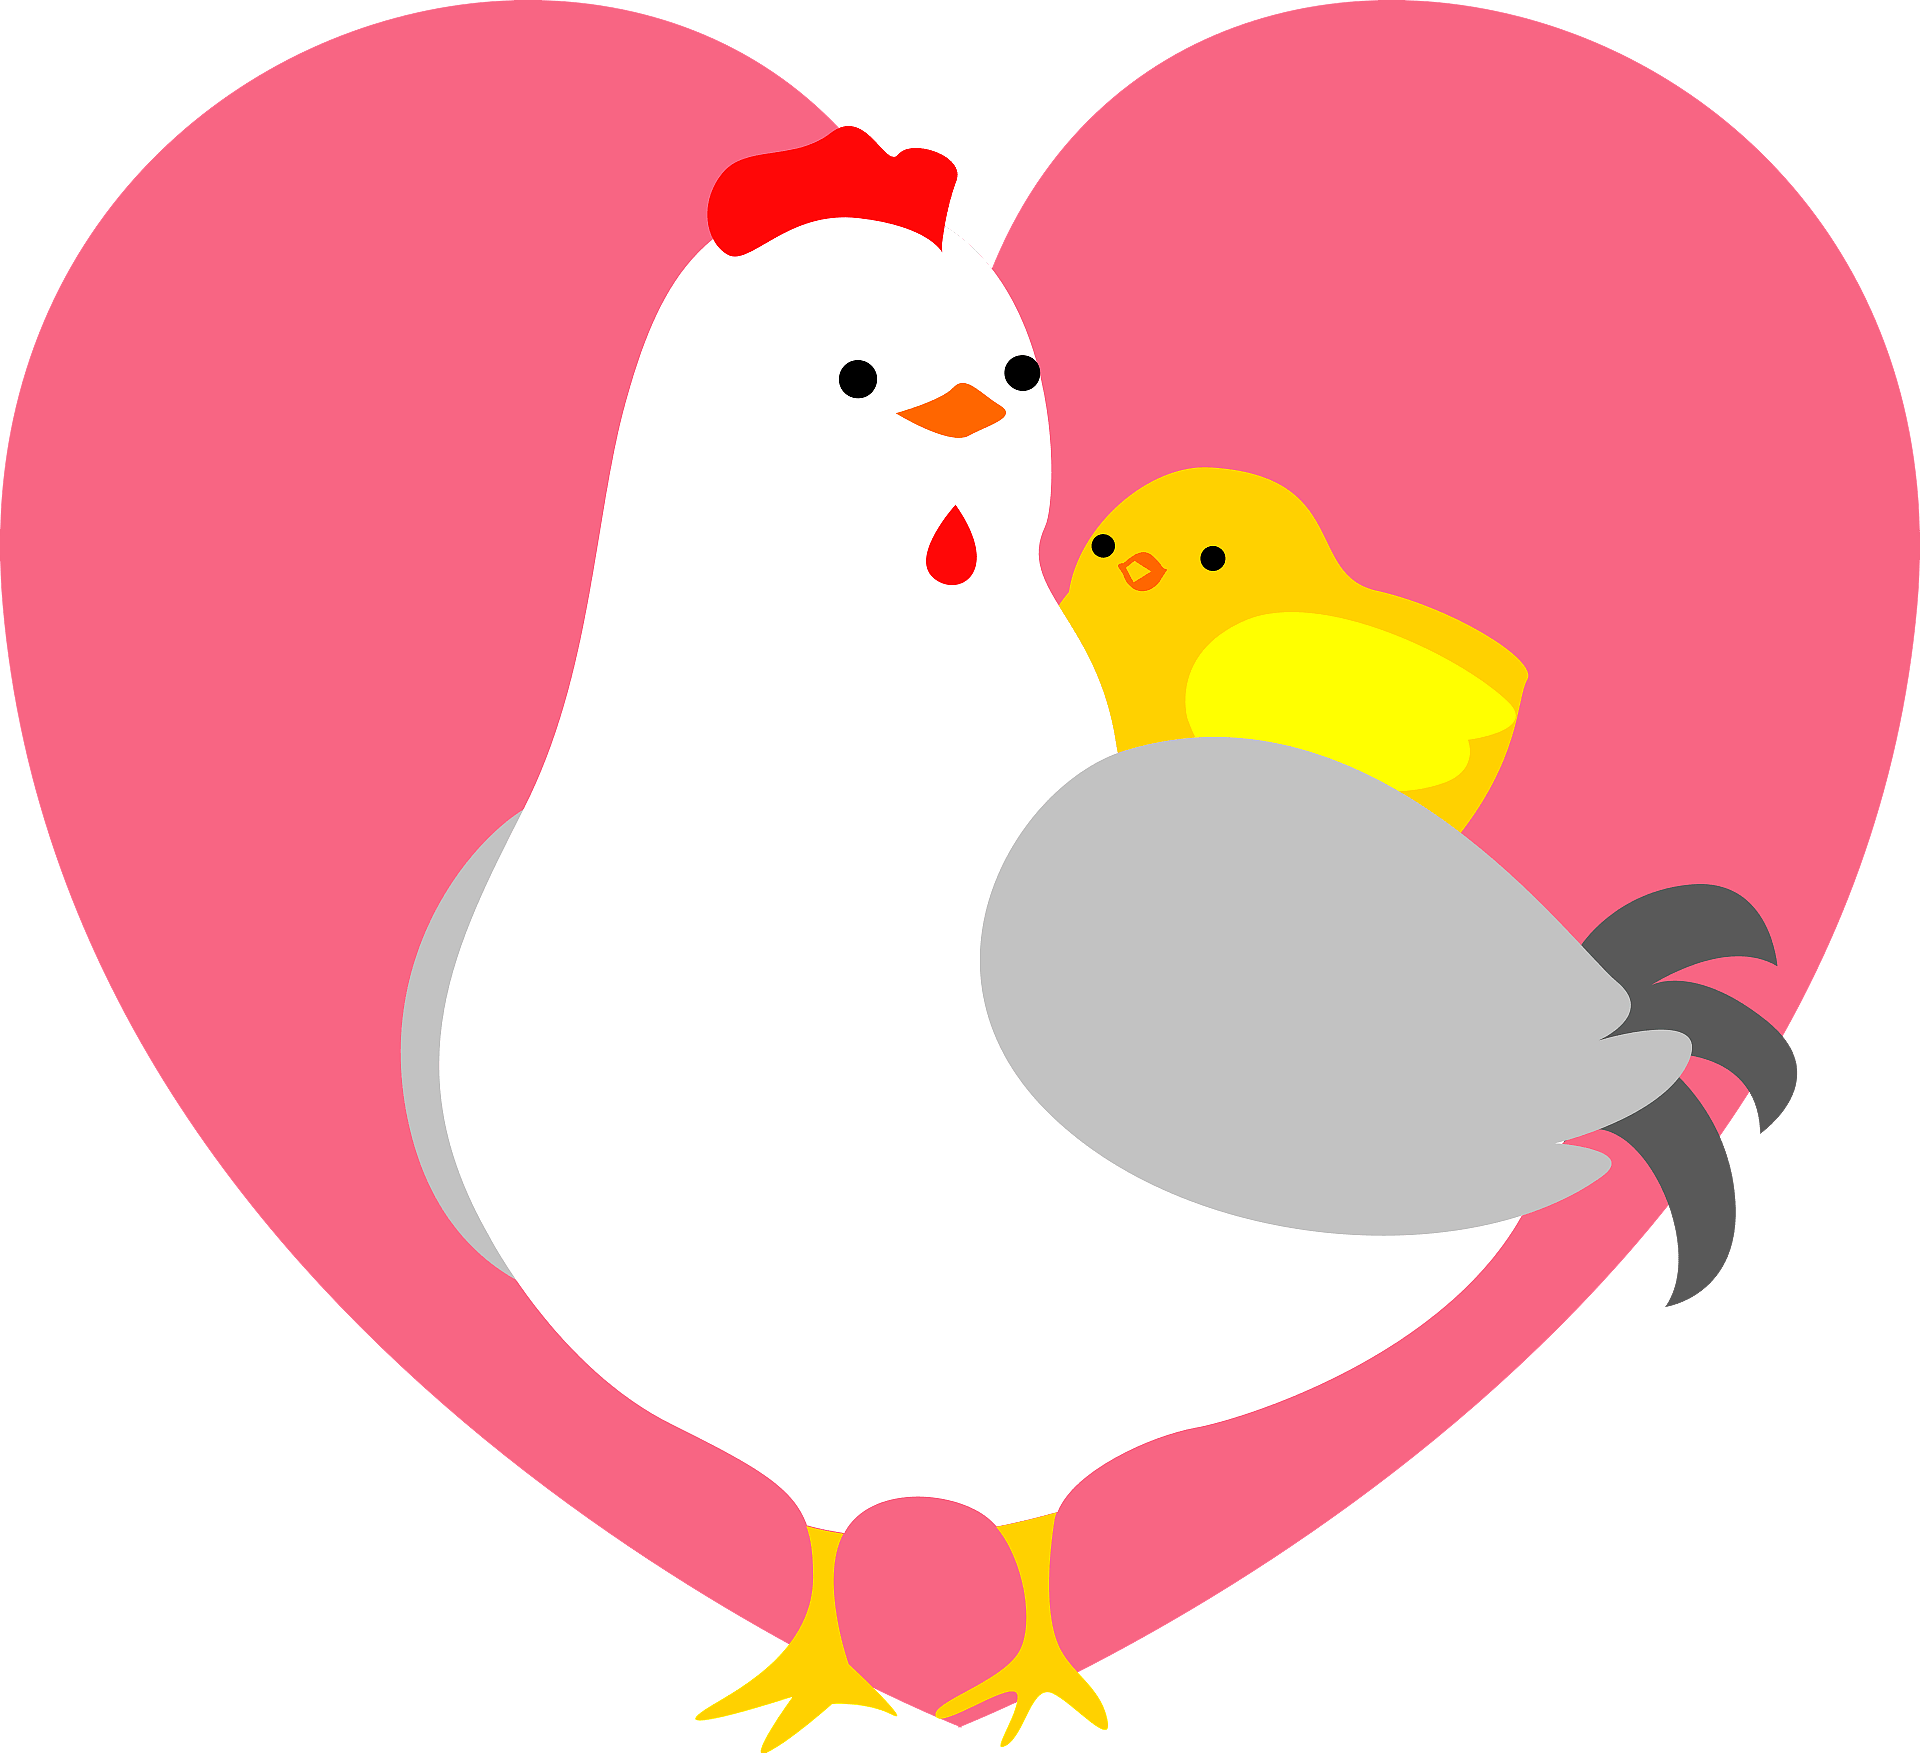 Yellow Chick Character Holding A Valentine Love Heart Stock Photo, Picture  And Royalty Free Image. Image 53241435.